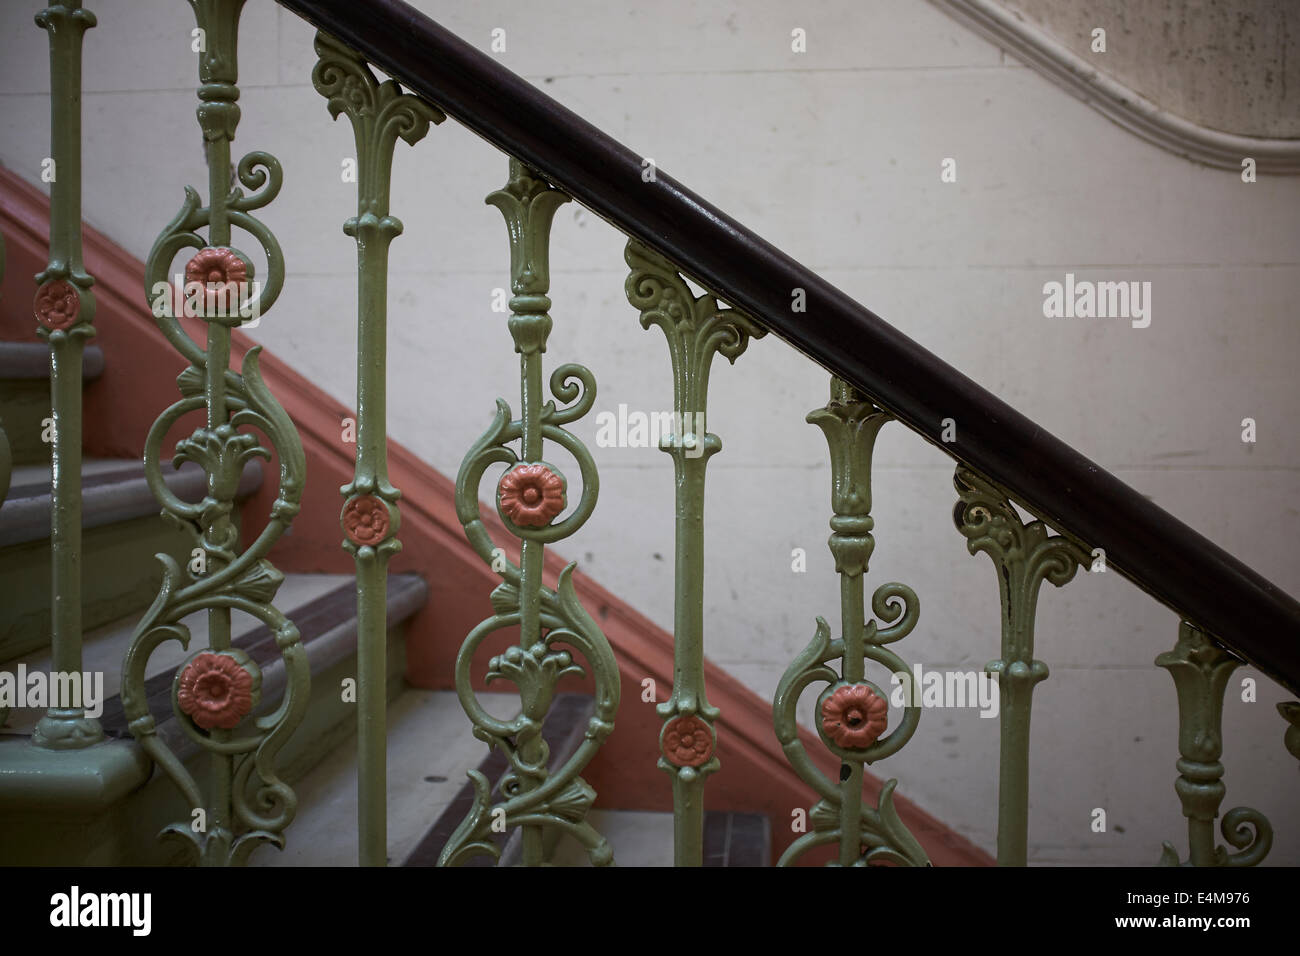 Close Up Detail Of Old Metal Decorative Stair Spindles   Stock Image